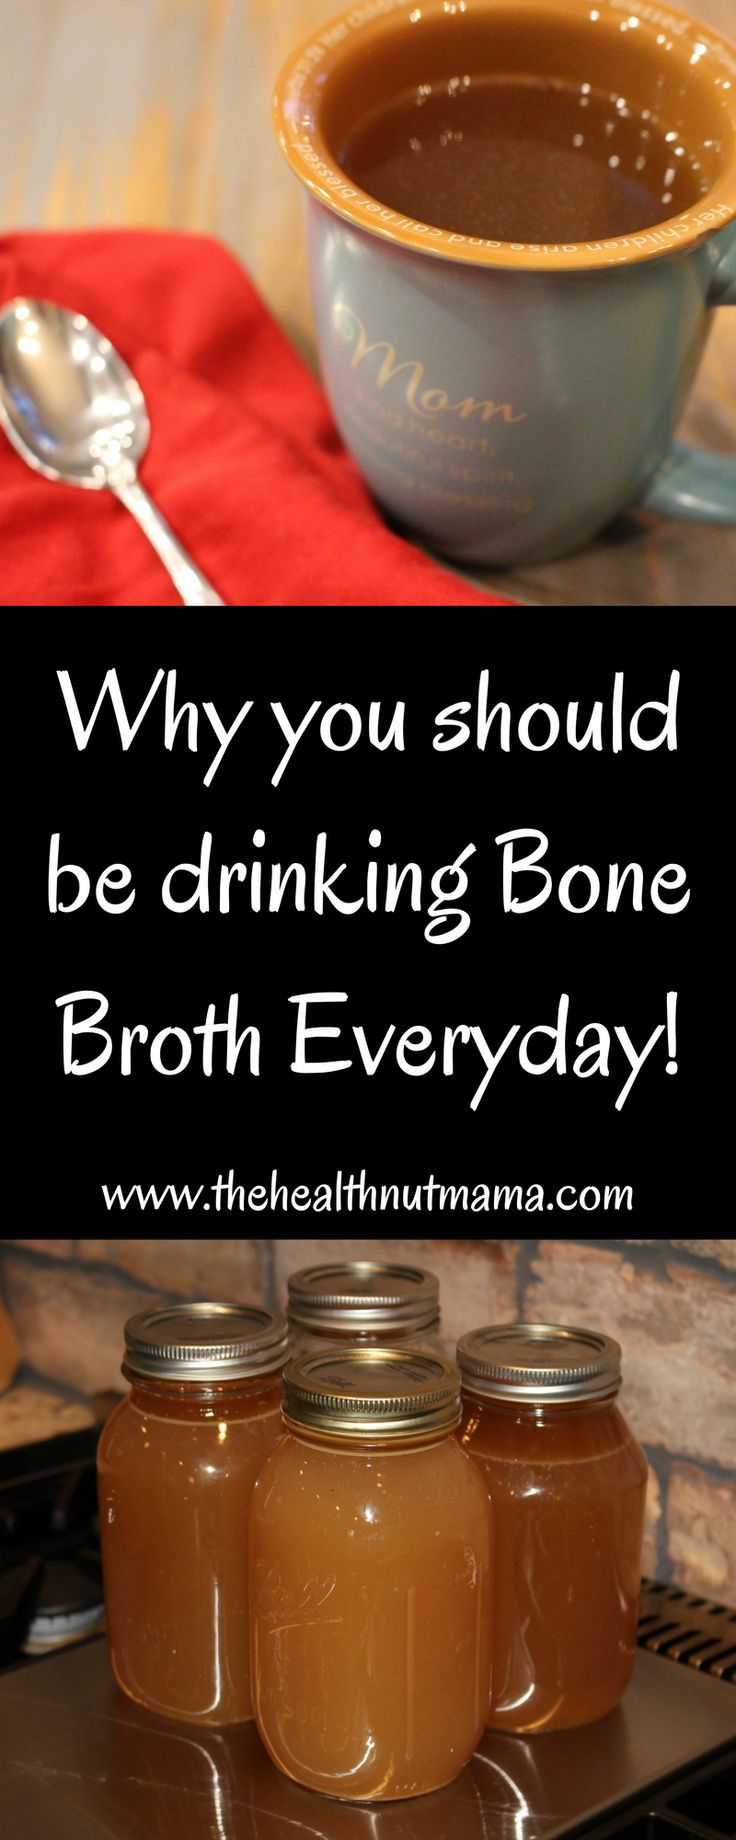 Why you should be drinking Bone Broth Everyday! The benefits of Bone Broth. If you have leaky gut or autoimmune disease, you need to be drinking it everyday! Great for Hair, Nails, Cellulite too!